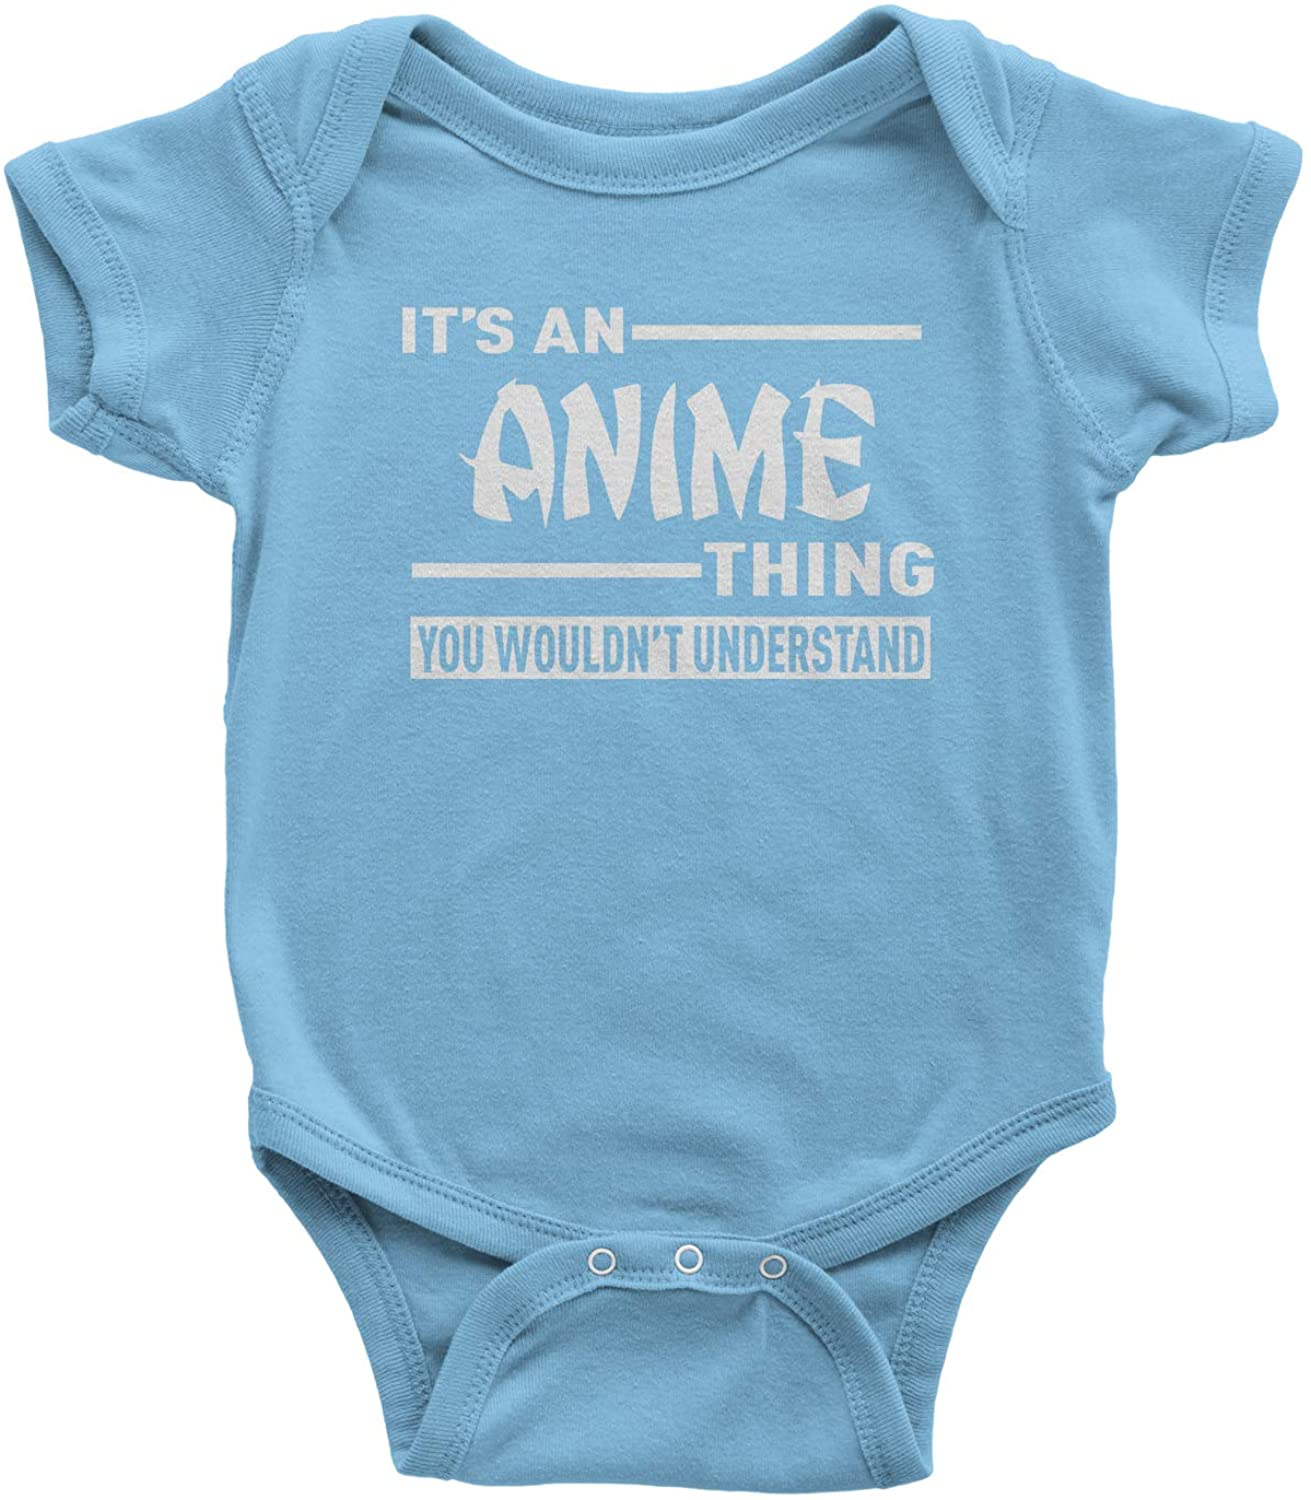 Expression Tees It's an Anime Thing You Wouldn't Understand Infant One-Piece Romper Bodysuit